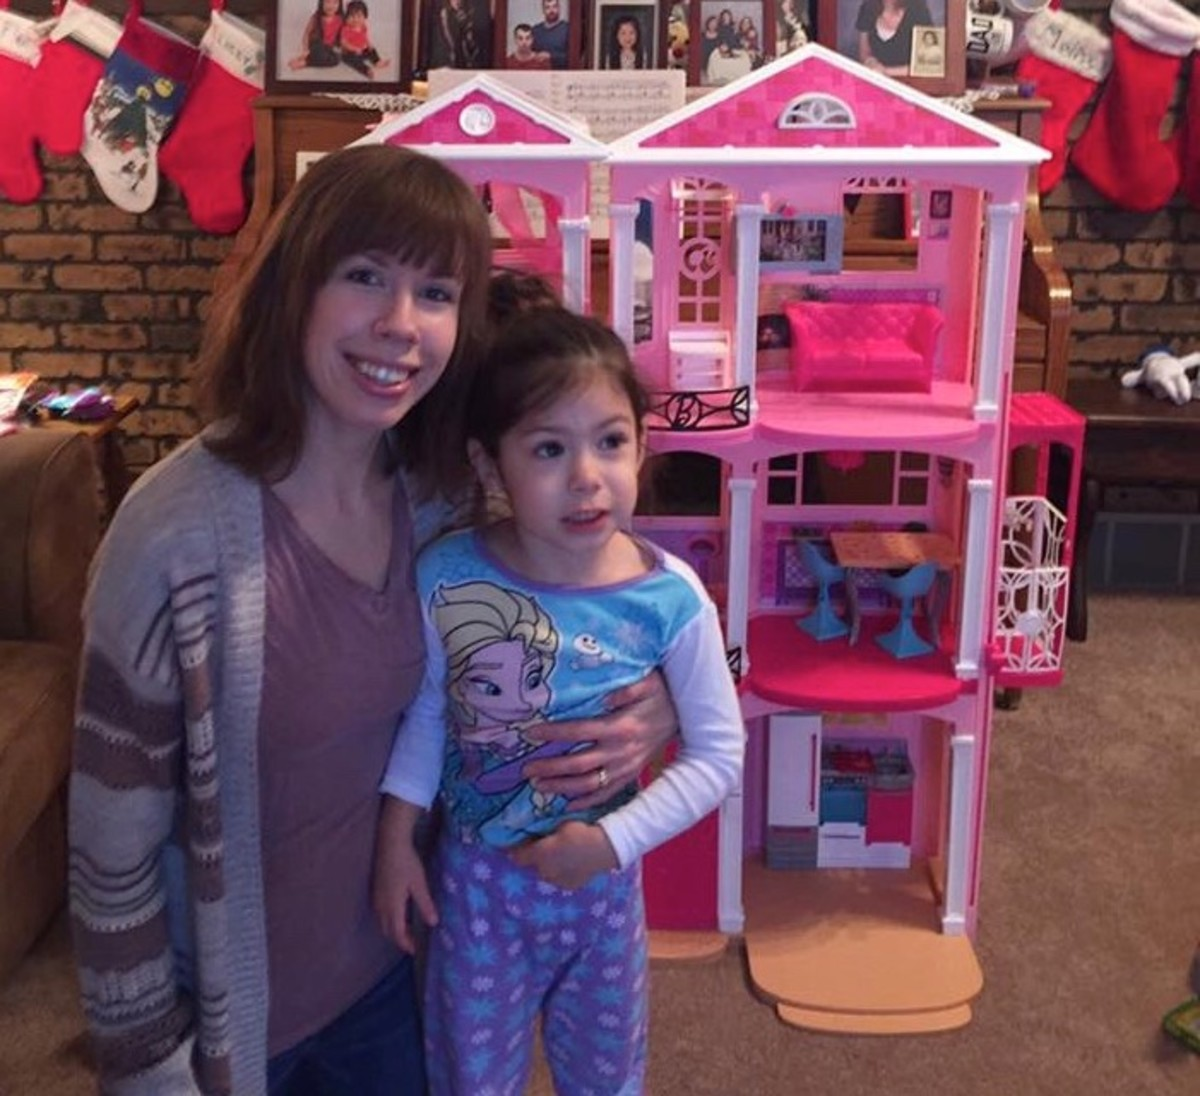 My Opinion and Review of the Barbie Dream House